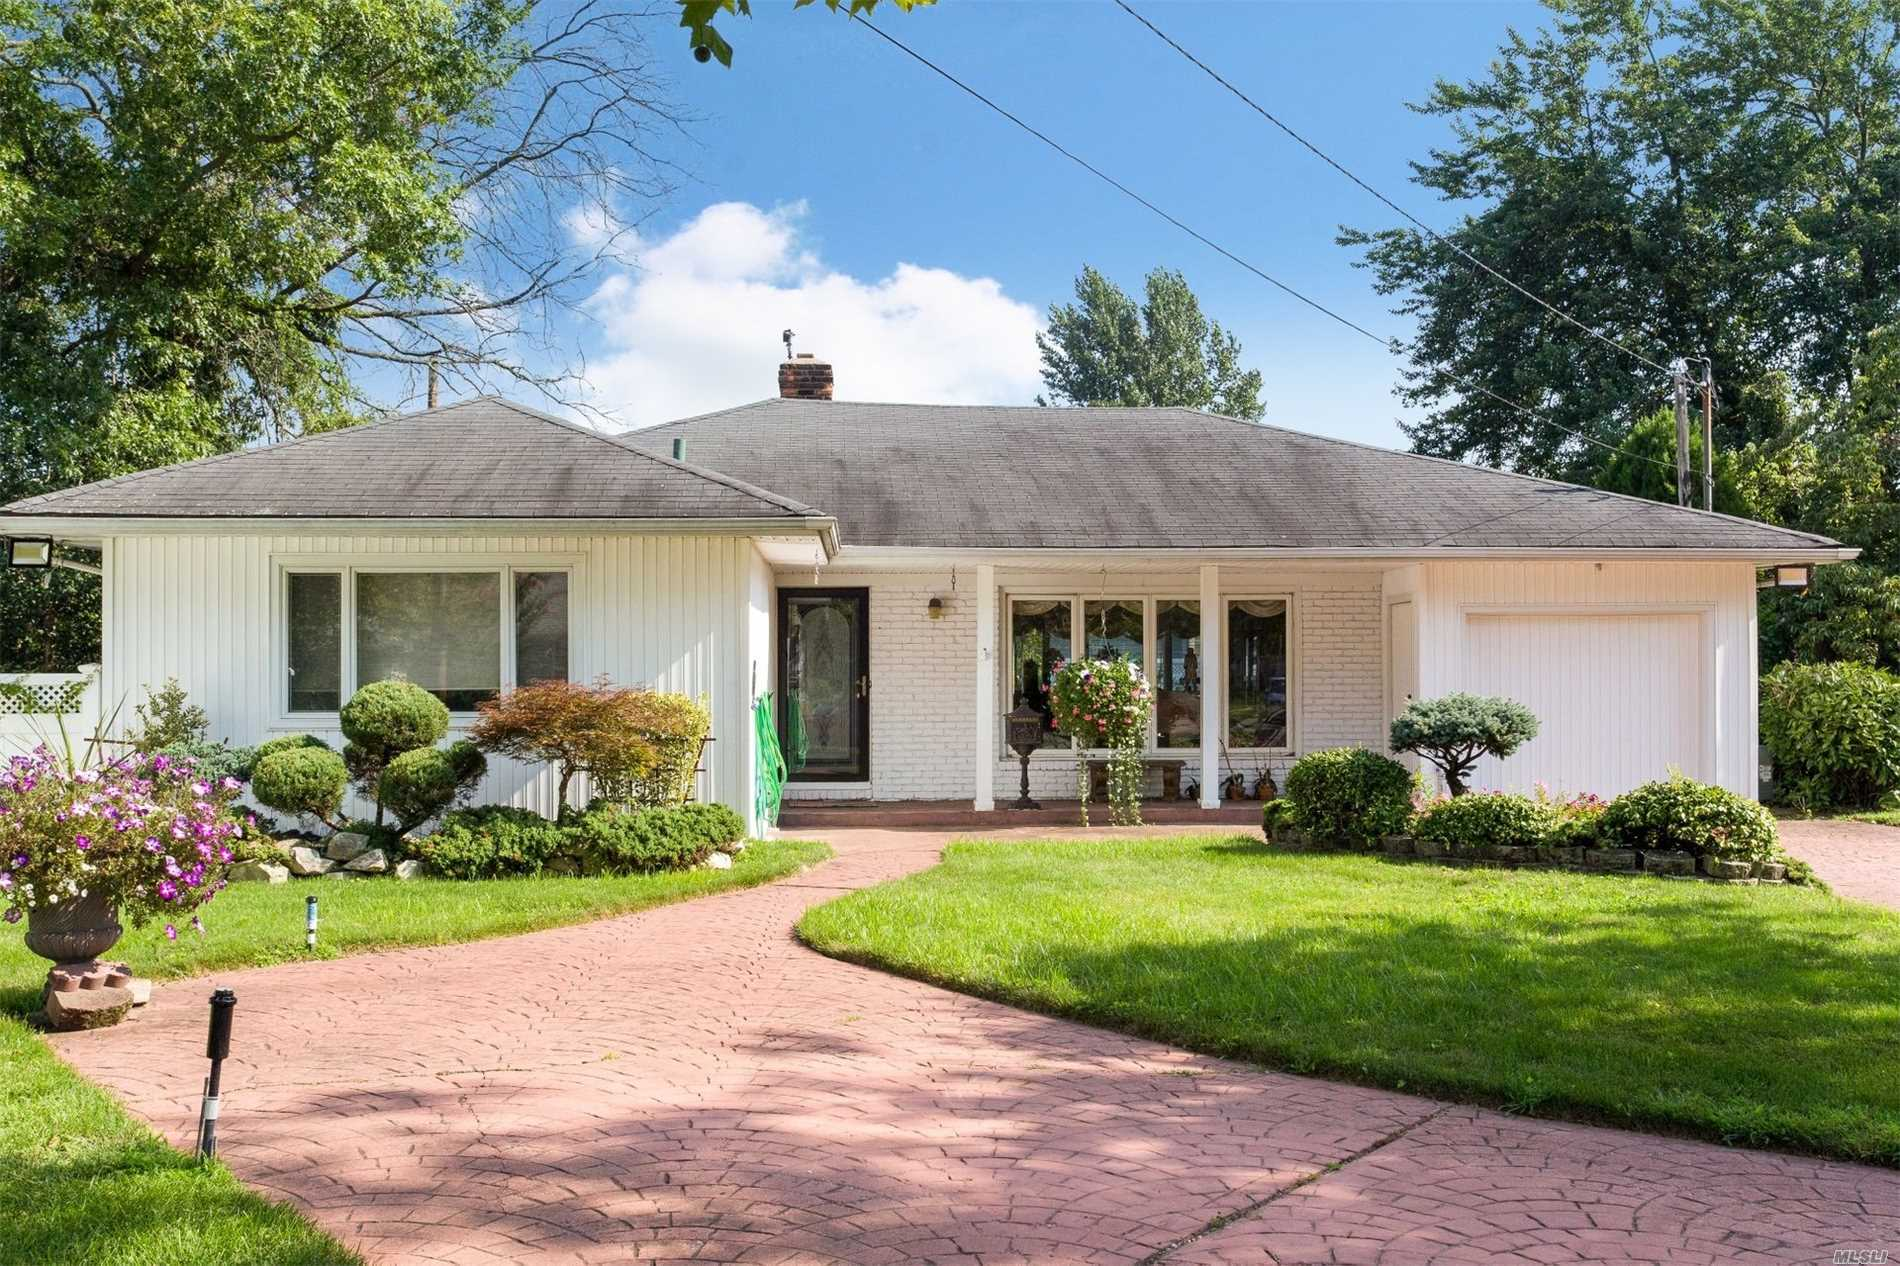 Beautifully Maintained Expanded Ranch On Quiet Cul-De-Sac In Saddle Ridge. 3 Bedrooms/2 Full Baths. Renovated Bathrooms And Granite Kitchen. Vaulted Ceilings, Crown Moldings And Skylights. Plenty Of Room To Expand. 5 Car Driveway. Walk To All. Taxes Are Being Grieved.